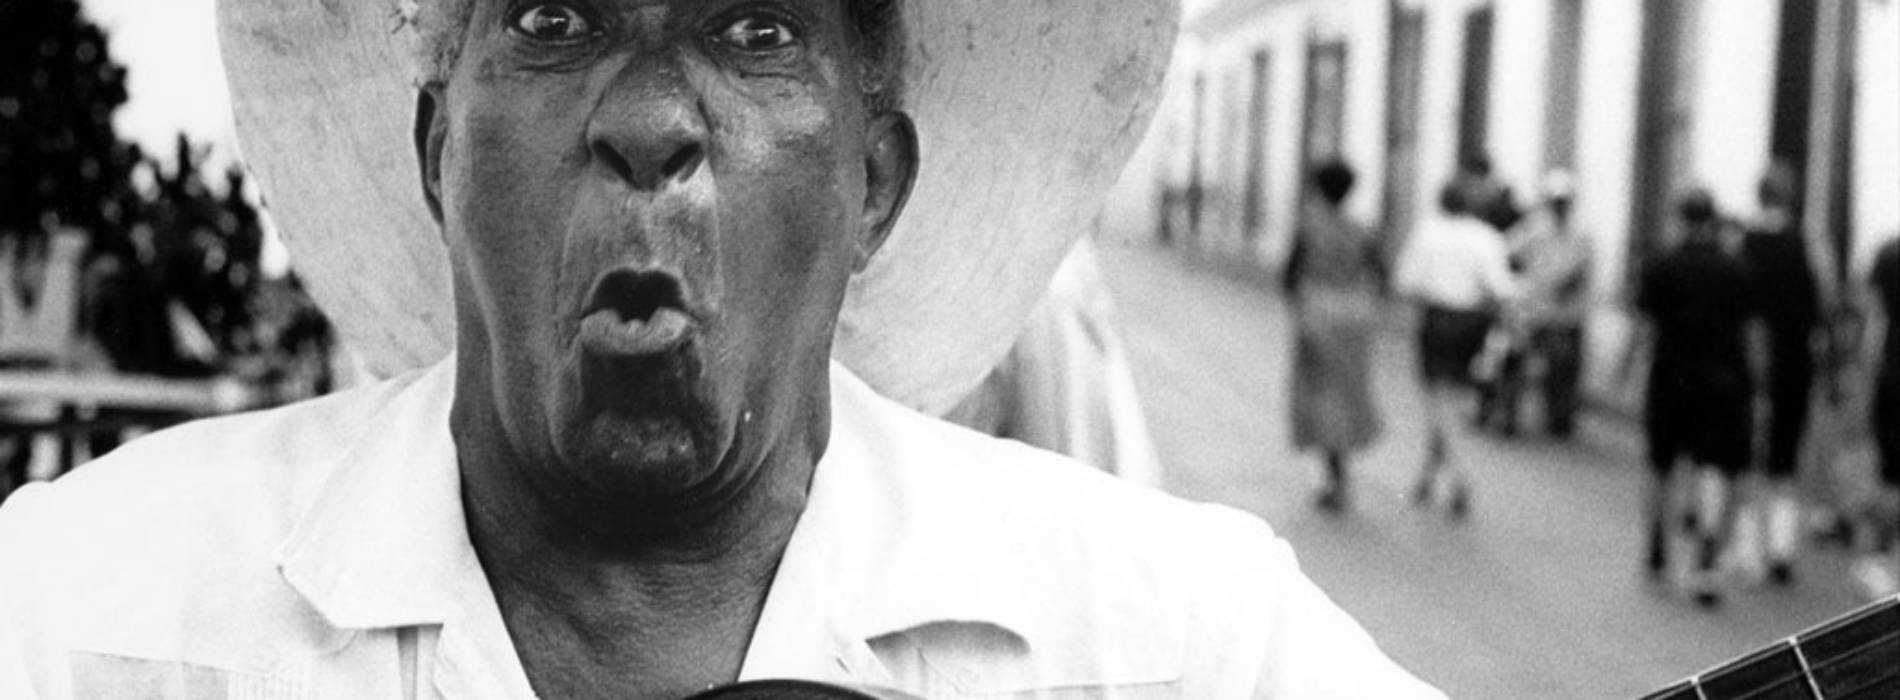 Street Photography: las claves de los retratos